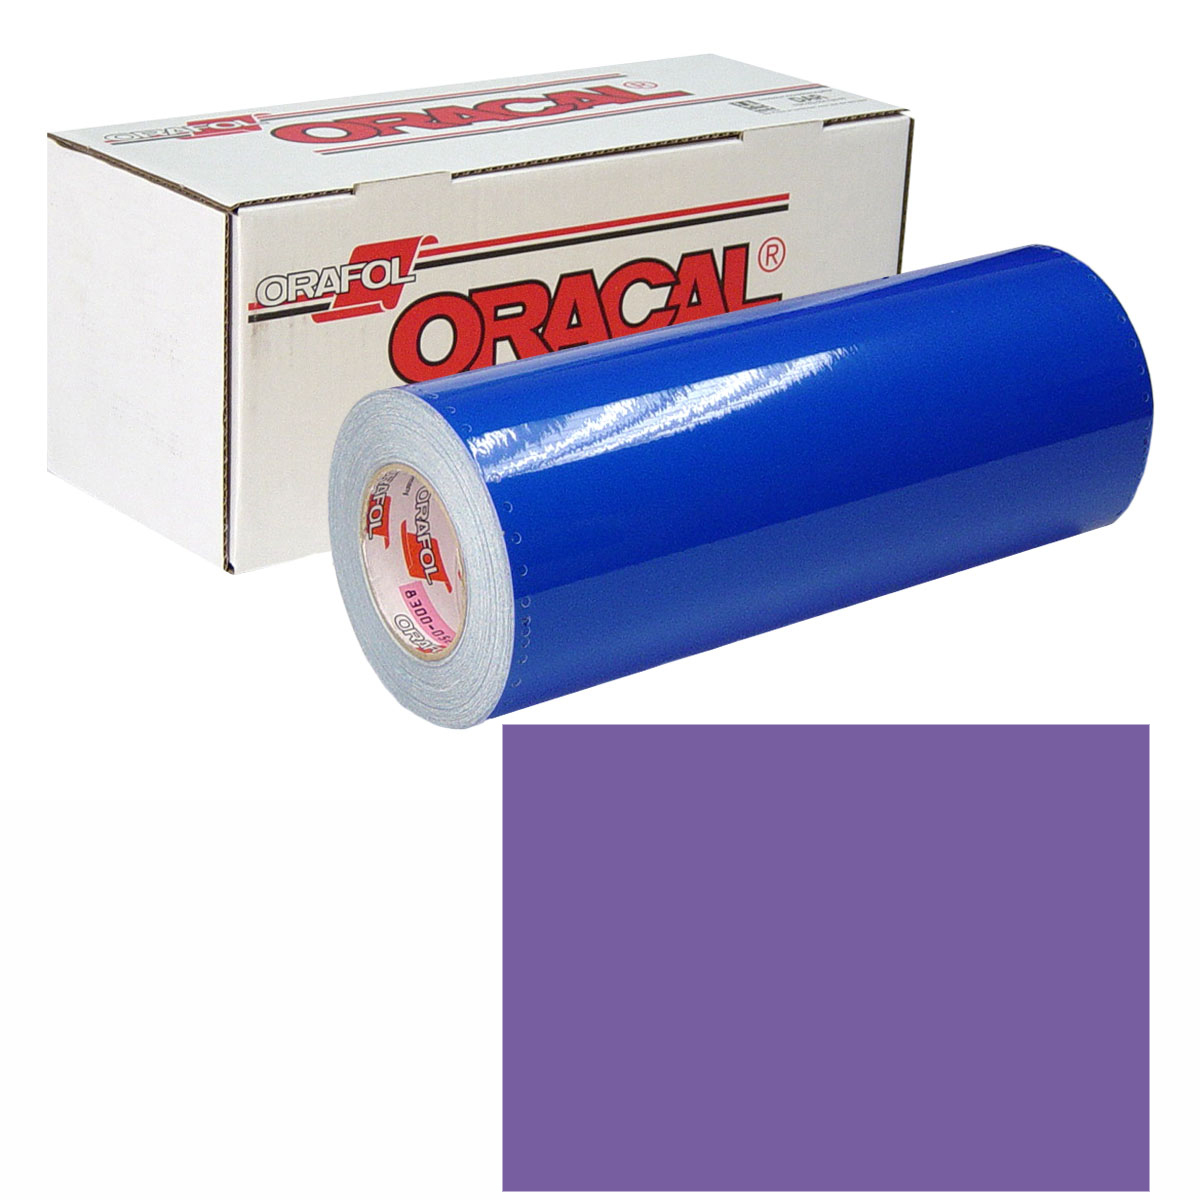 ORACAL 631 Unp 24in X 10yd 043 Lavender